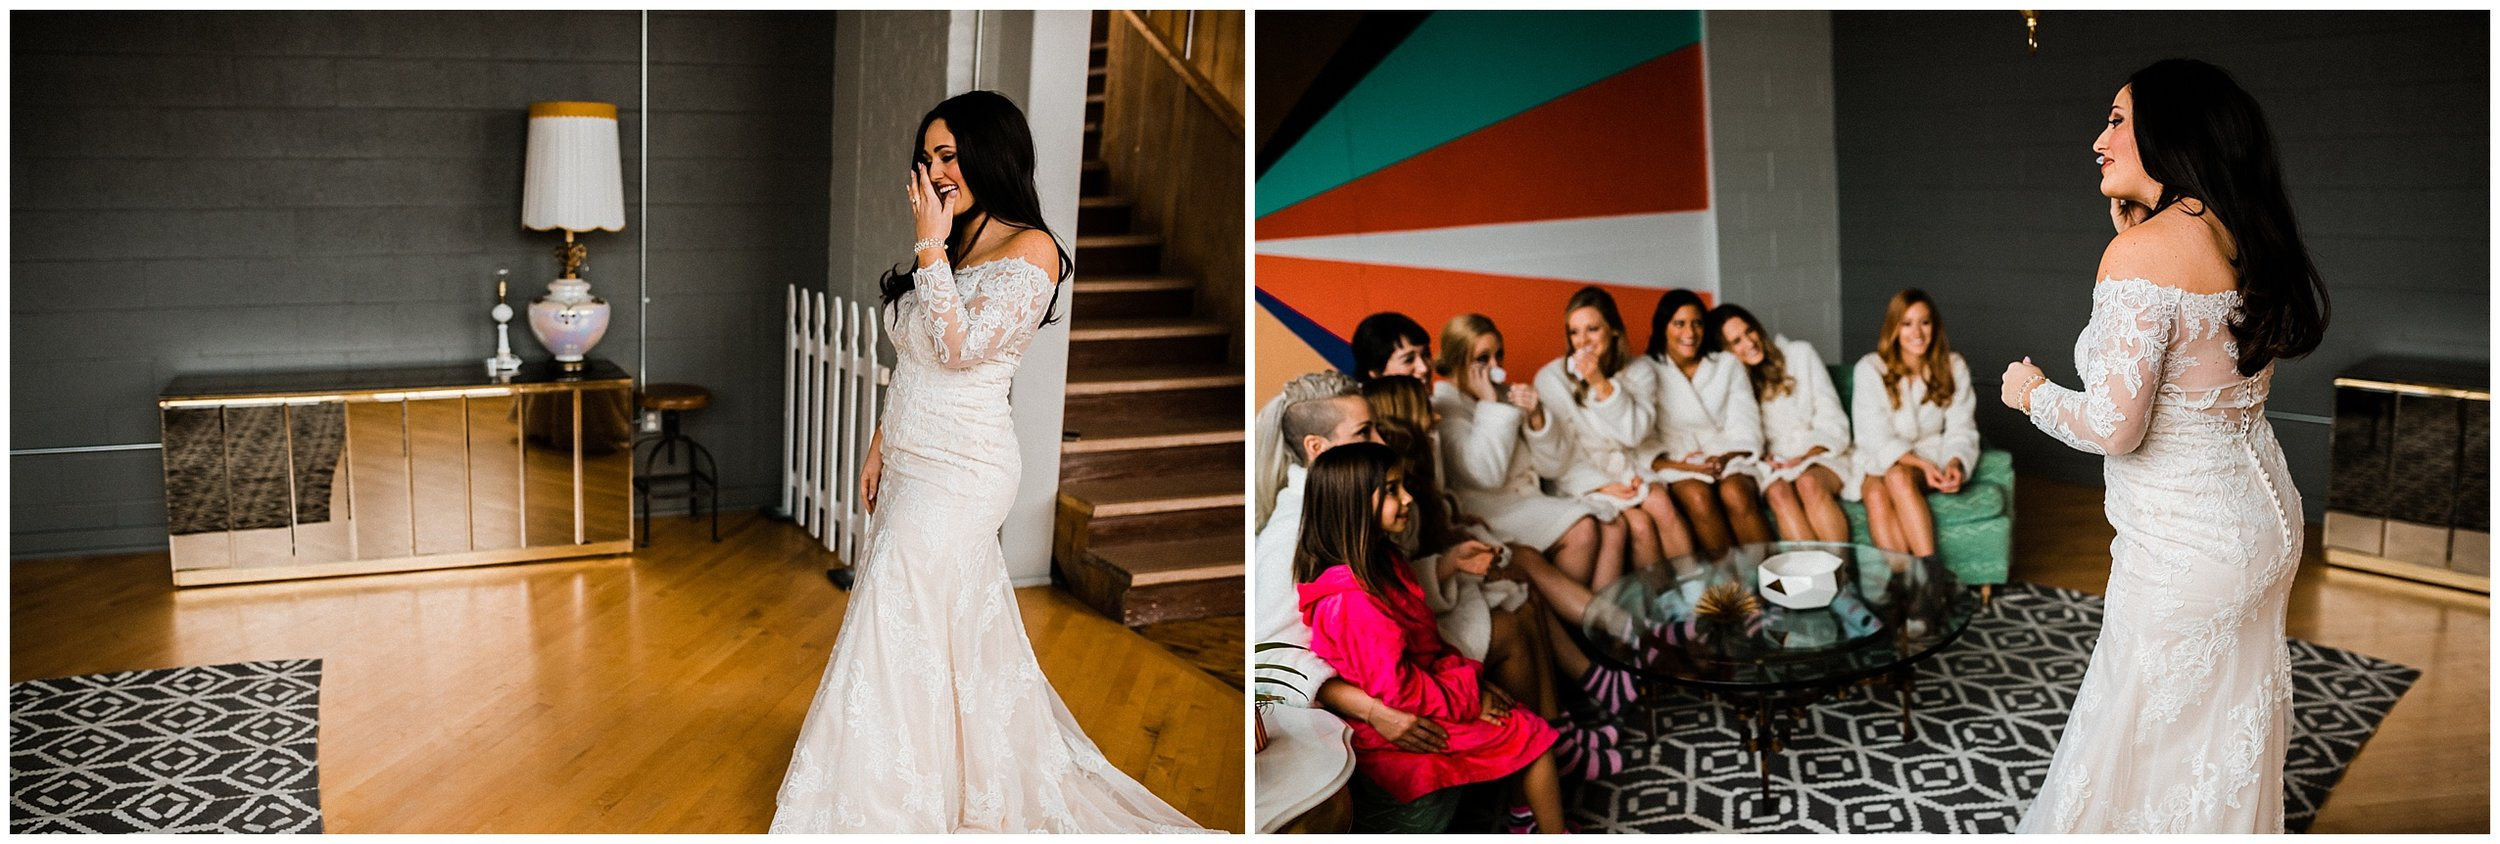 Josh + Marissa | Just Married_2058.jpg